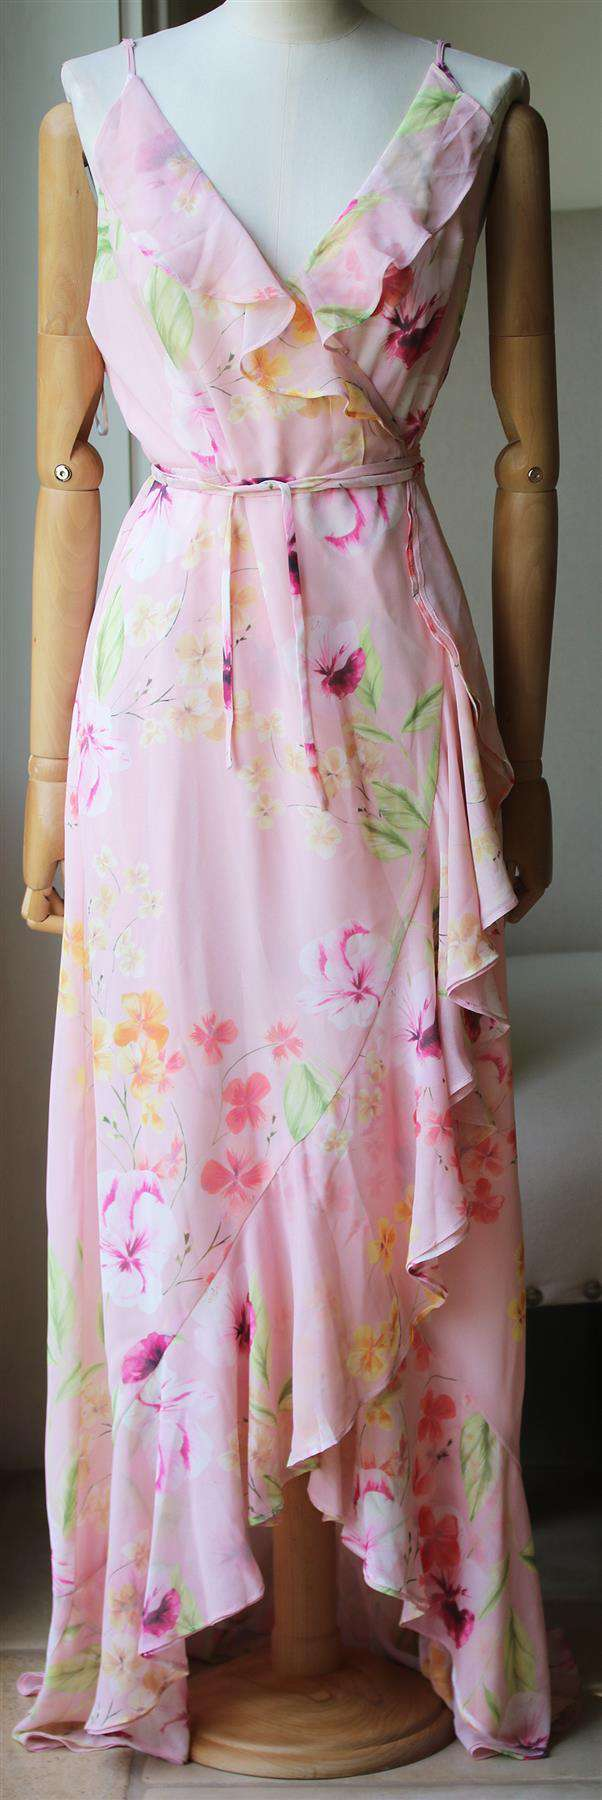 YUMI KIM MEADOW FLORAL PRINT WRAP MAXI DRESS LARGE